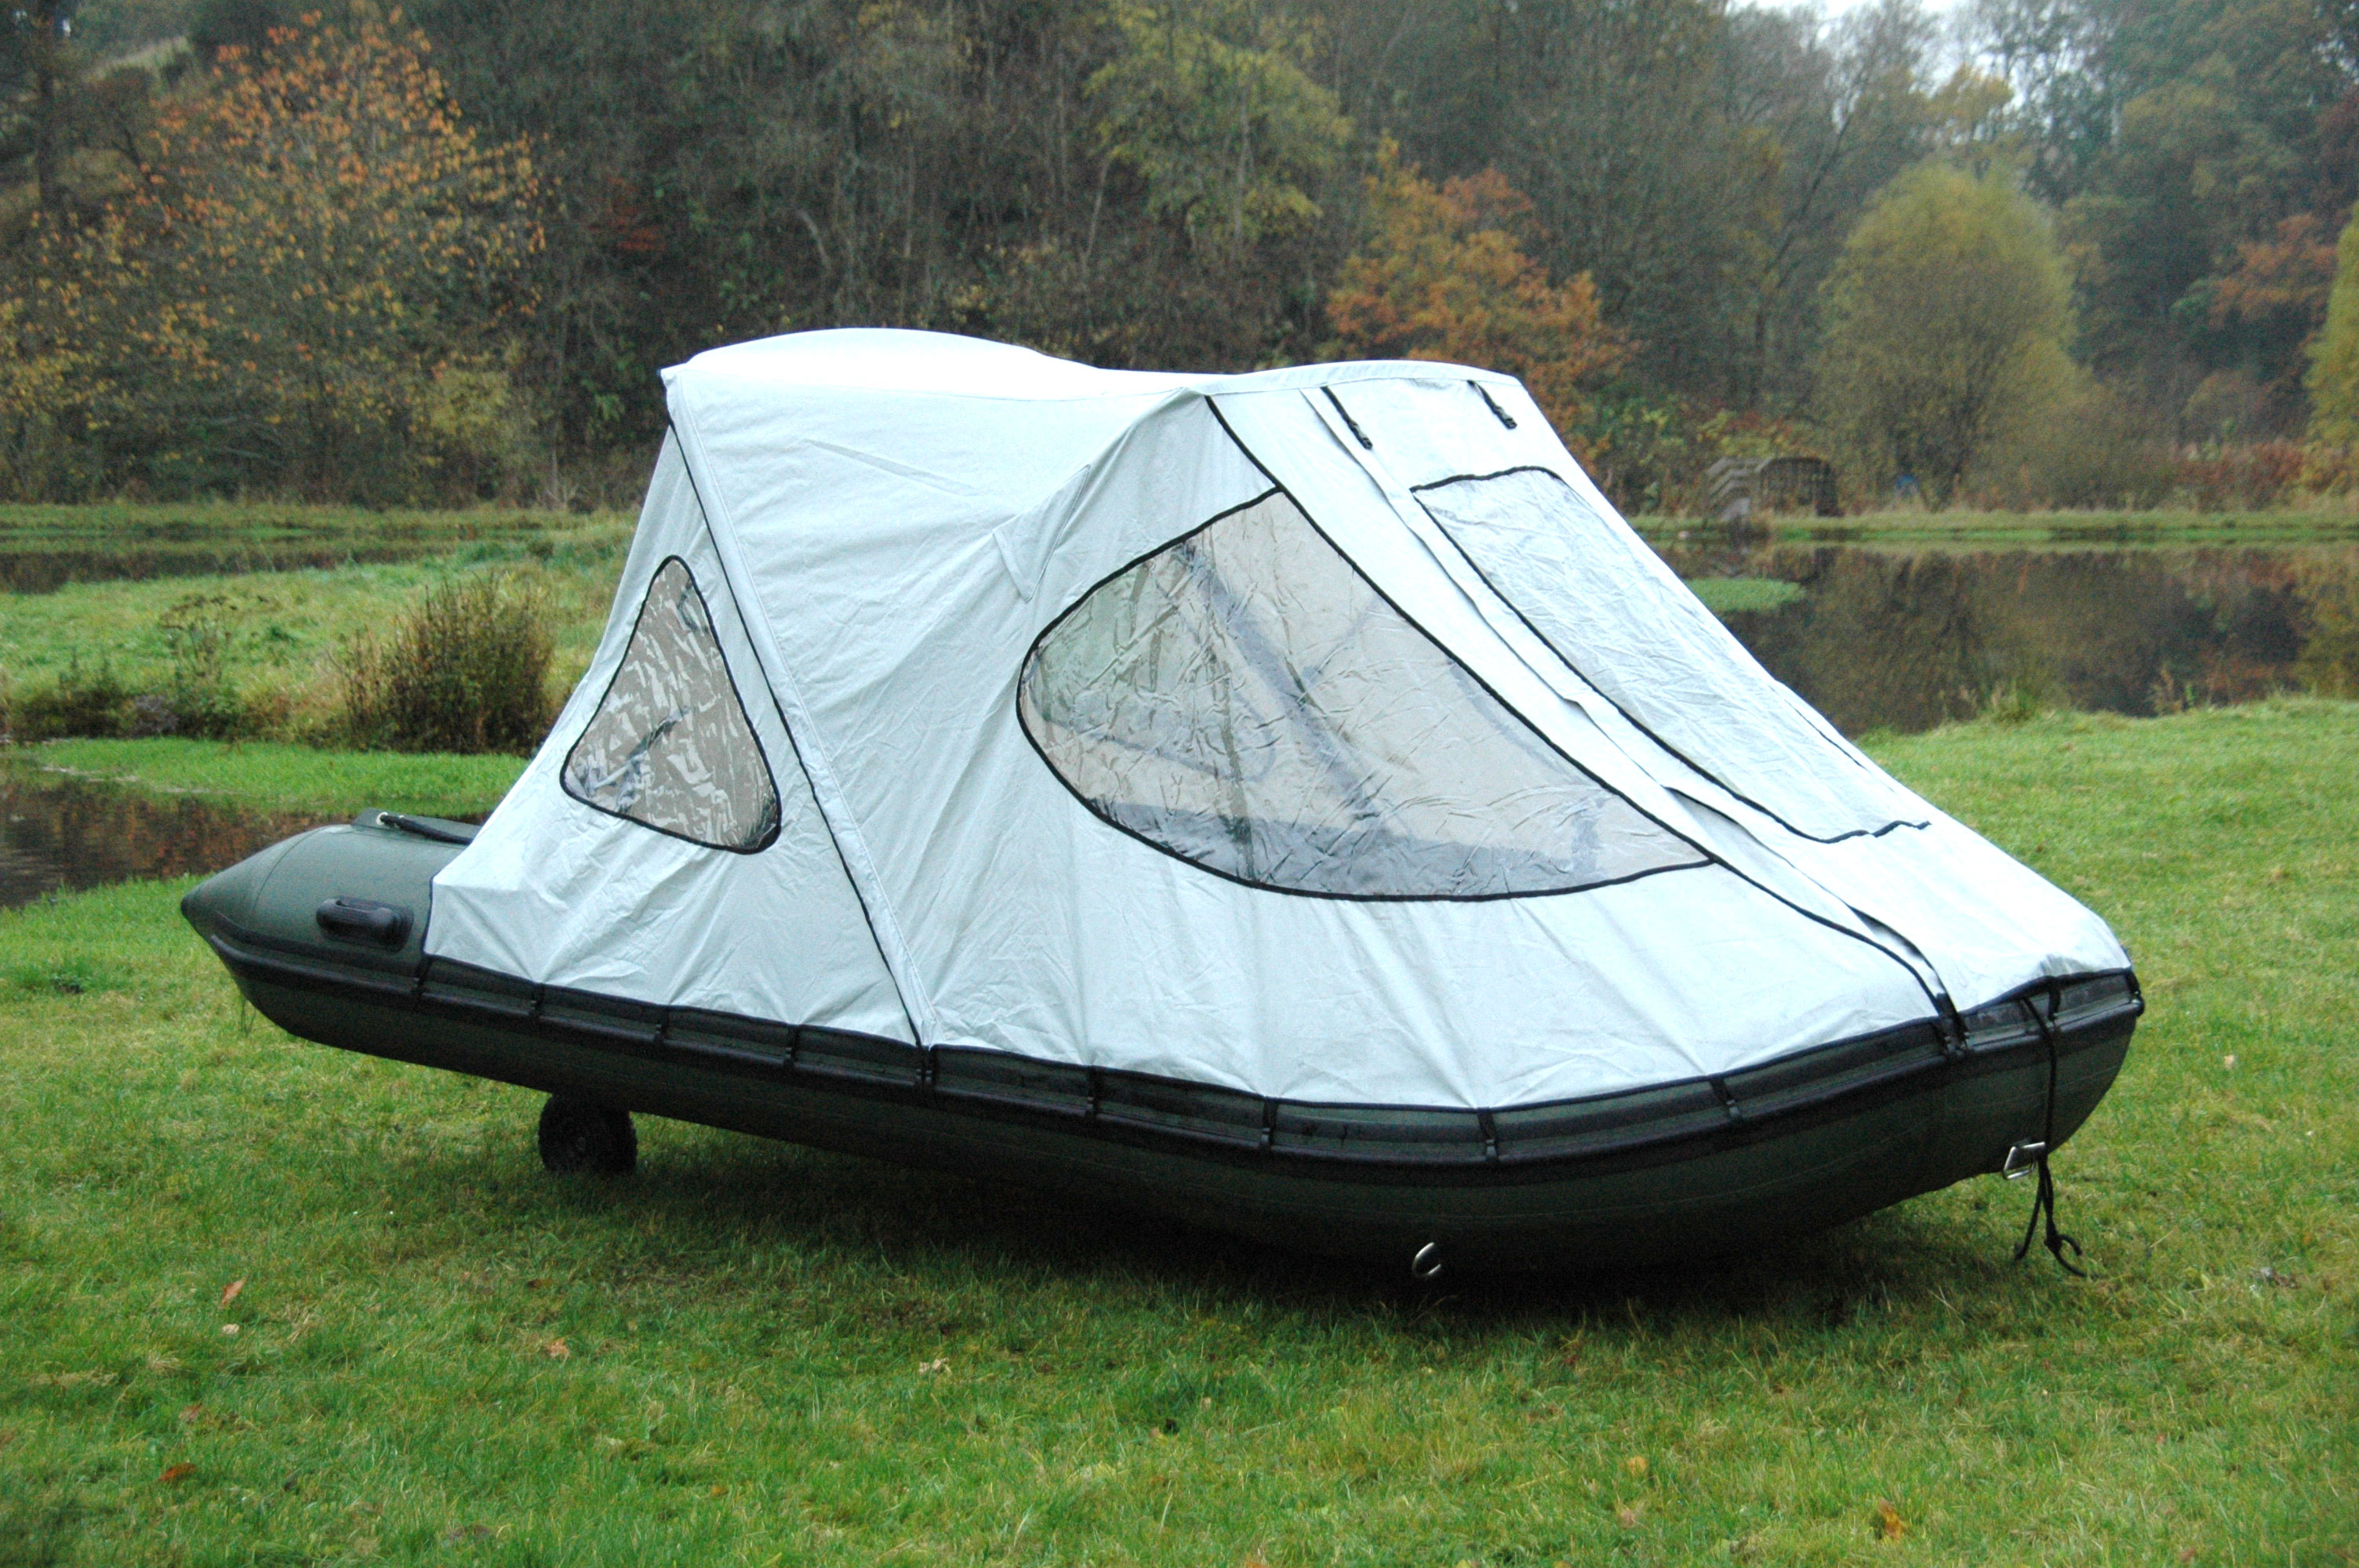 Bison marine bimini cockpit tent canopy for inflatable for Inflatable fishing boats for sale